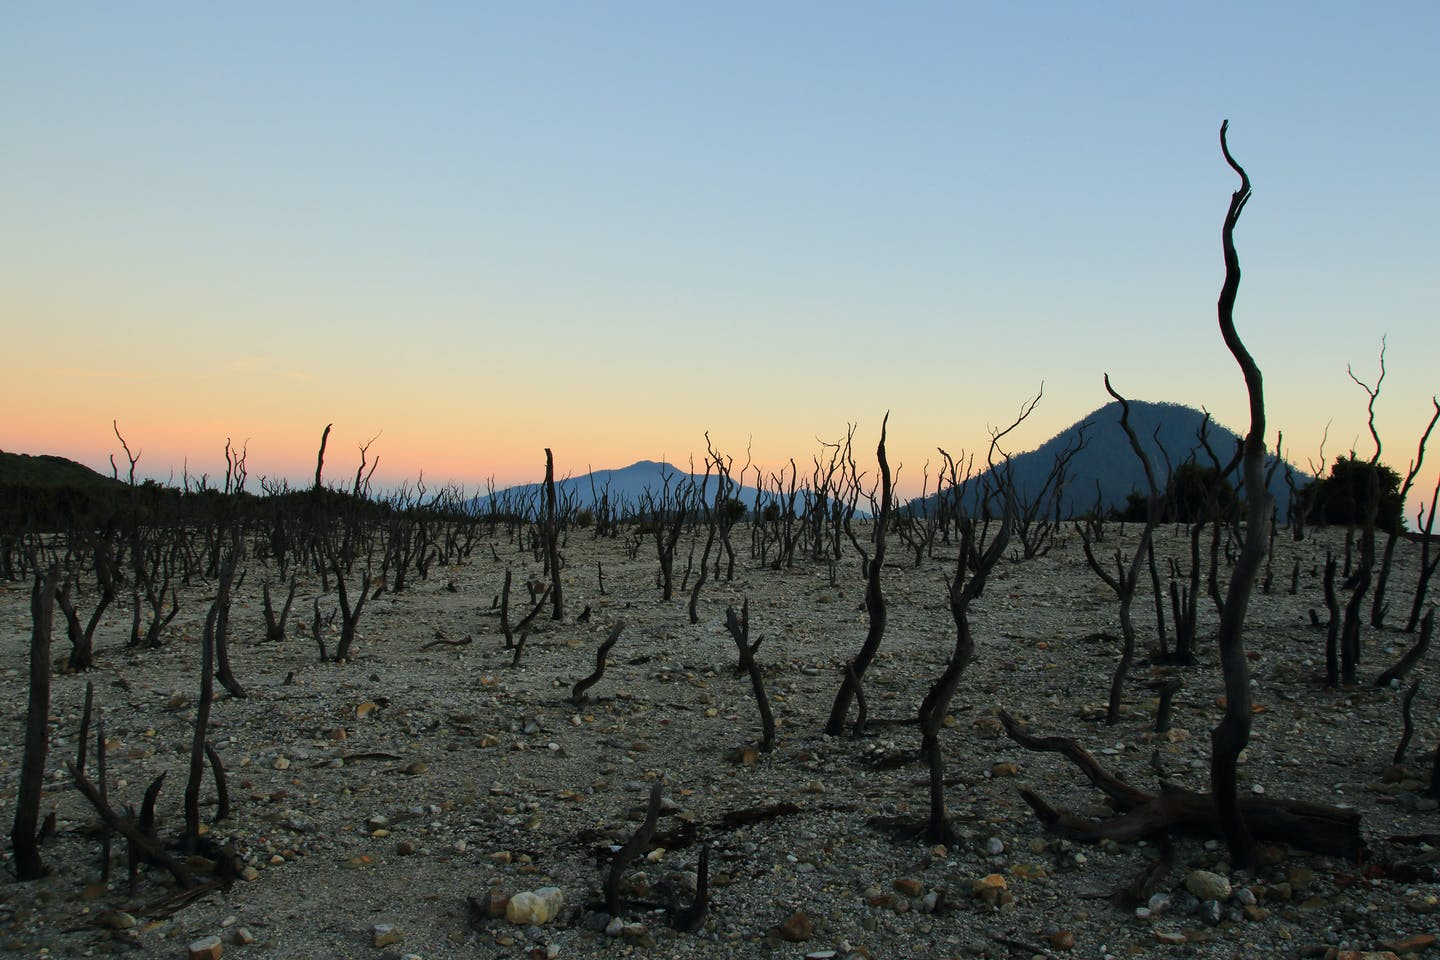 The Papandayan Dead Forest in Java, Indonesia